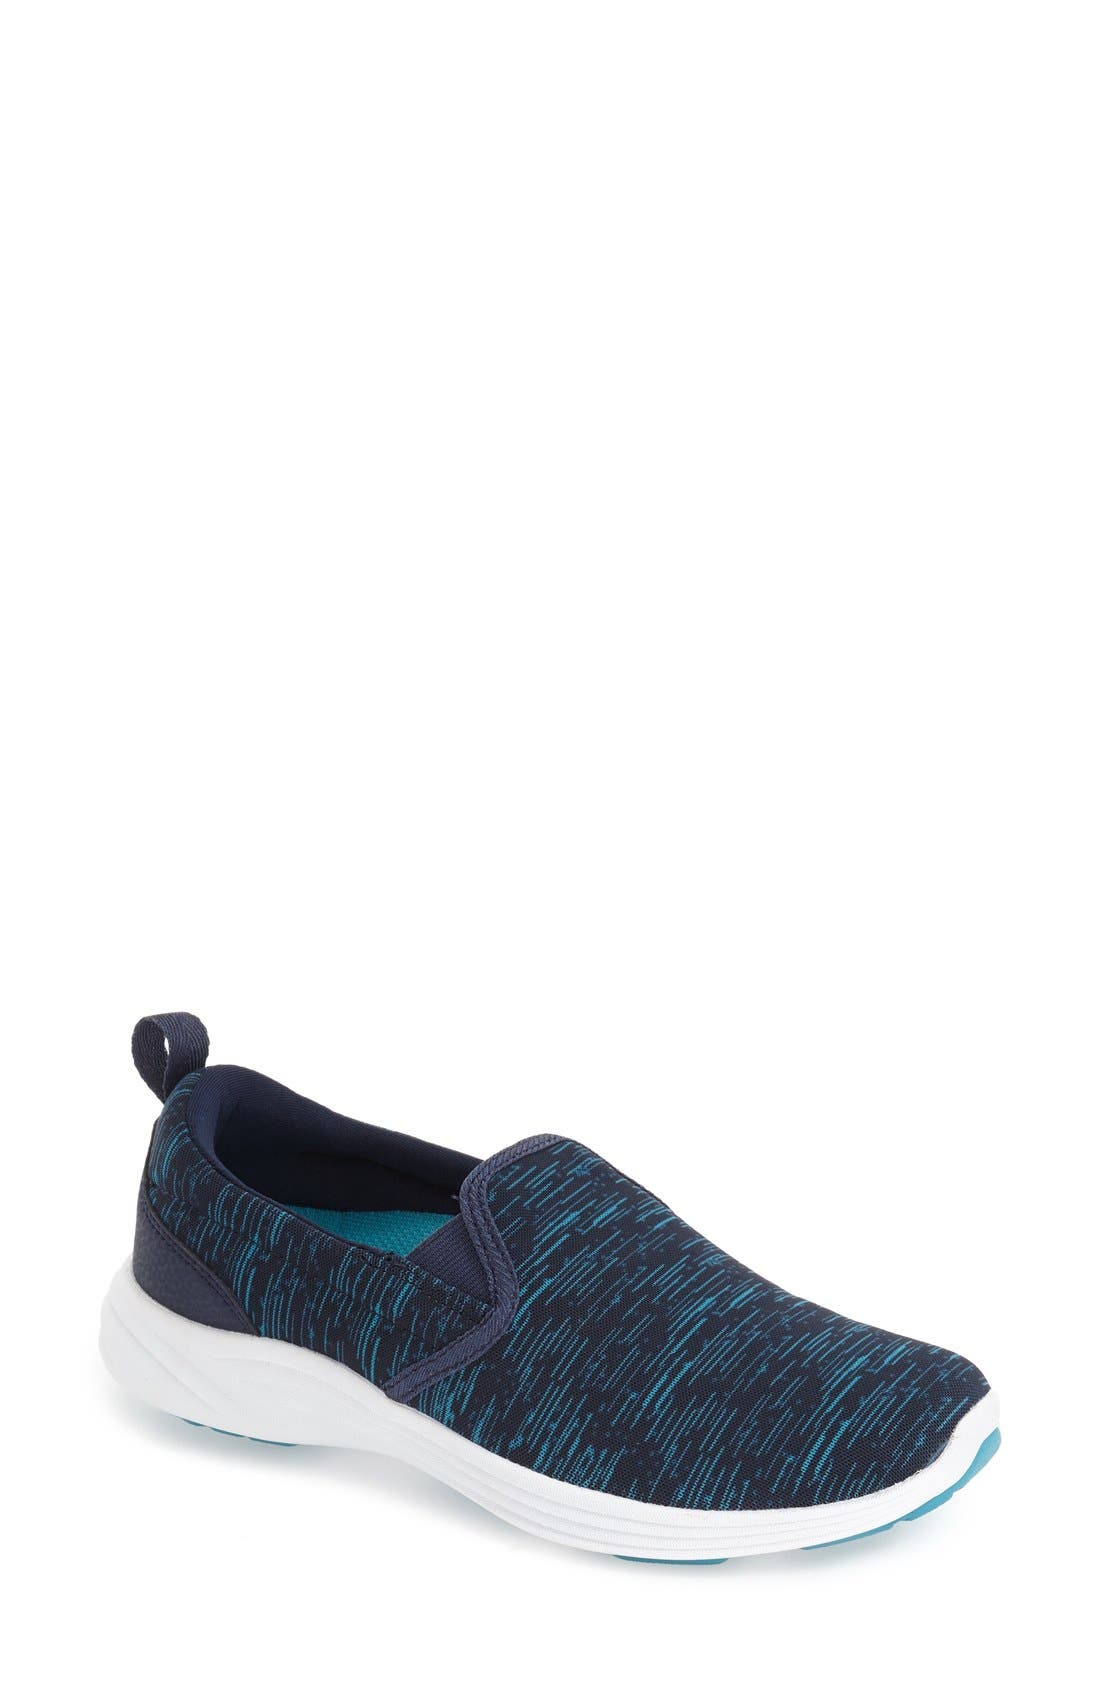 Vionic 'Kea' Slip-On Sneaker (Women)